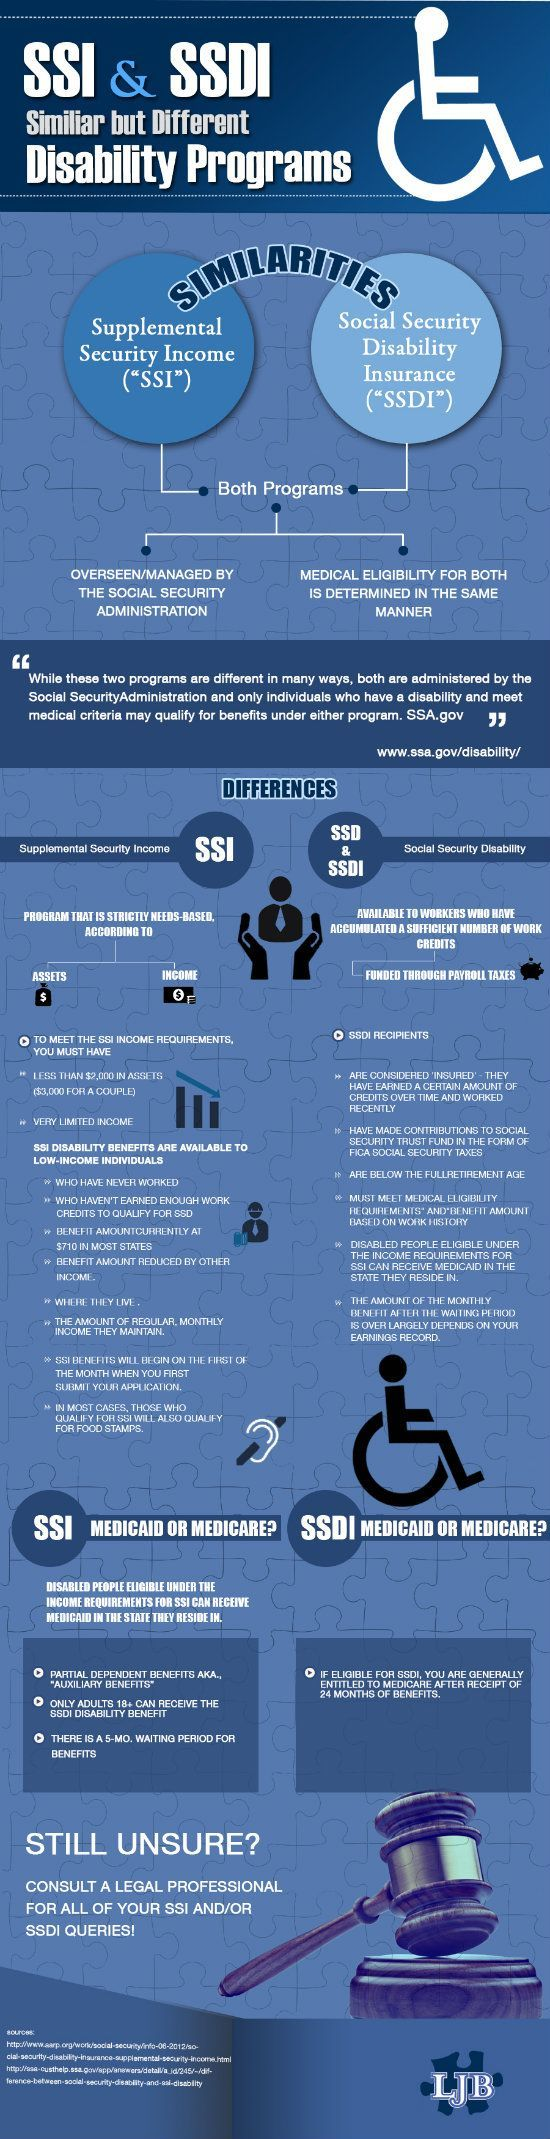 Ssdi And Ssi: Similar But Different Disability Programs